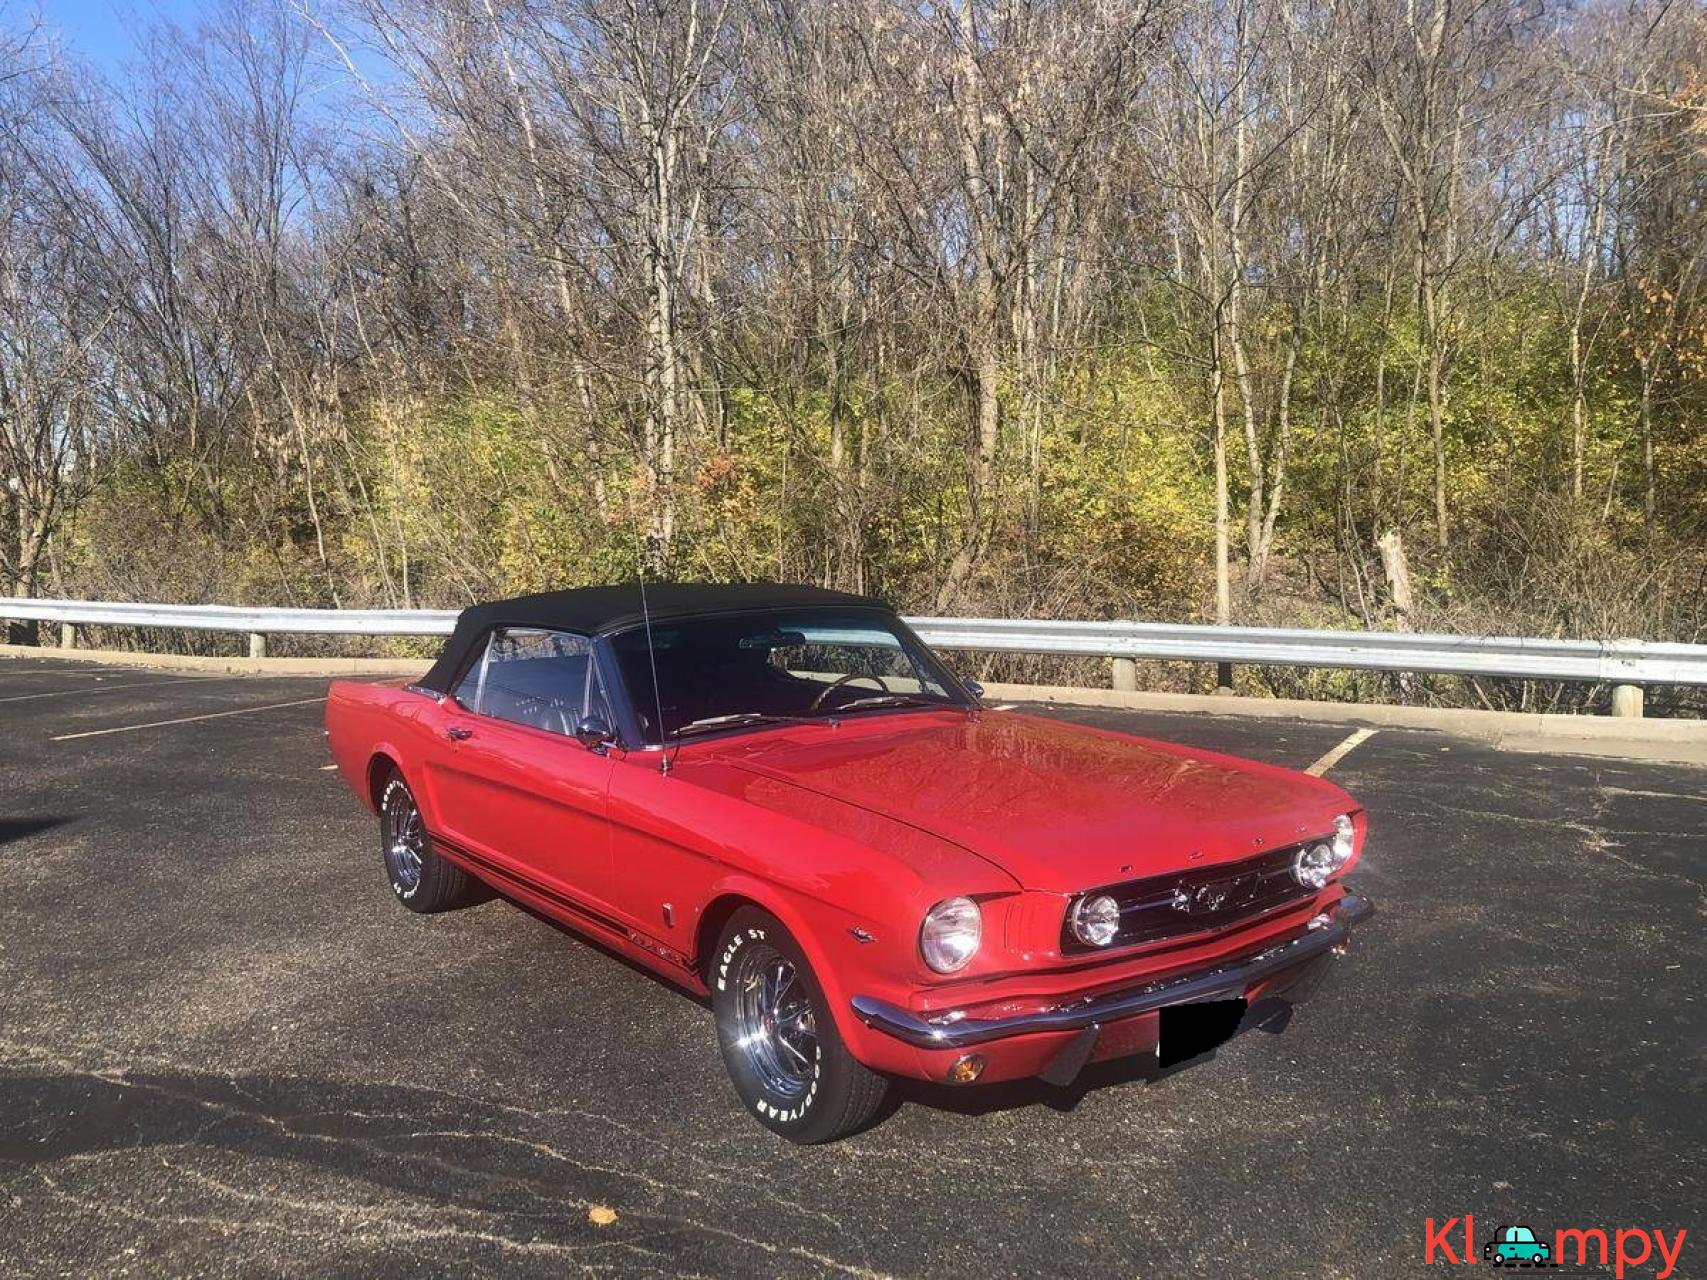 1966 Ford Mustang GT Convertible 302 - 9/20